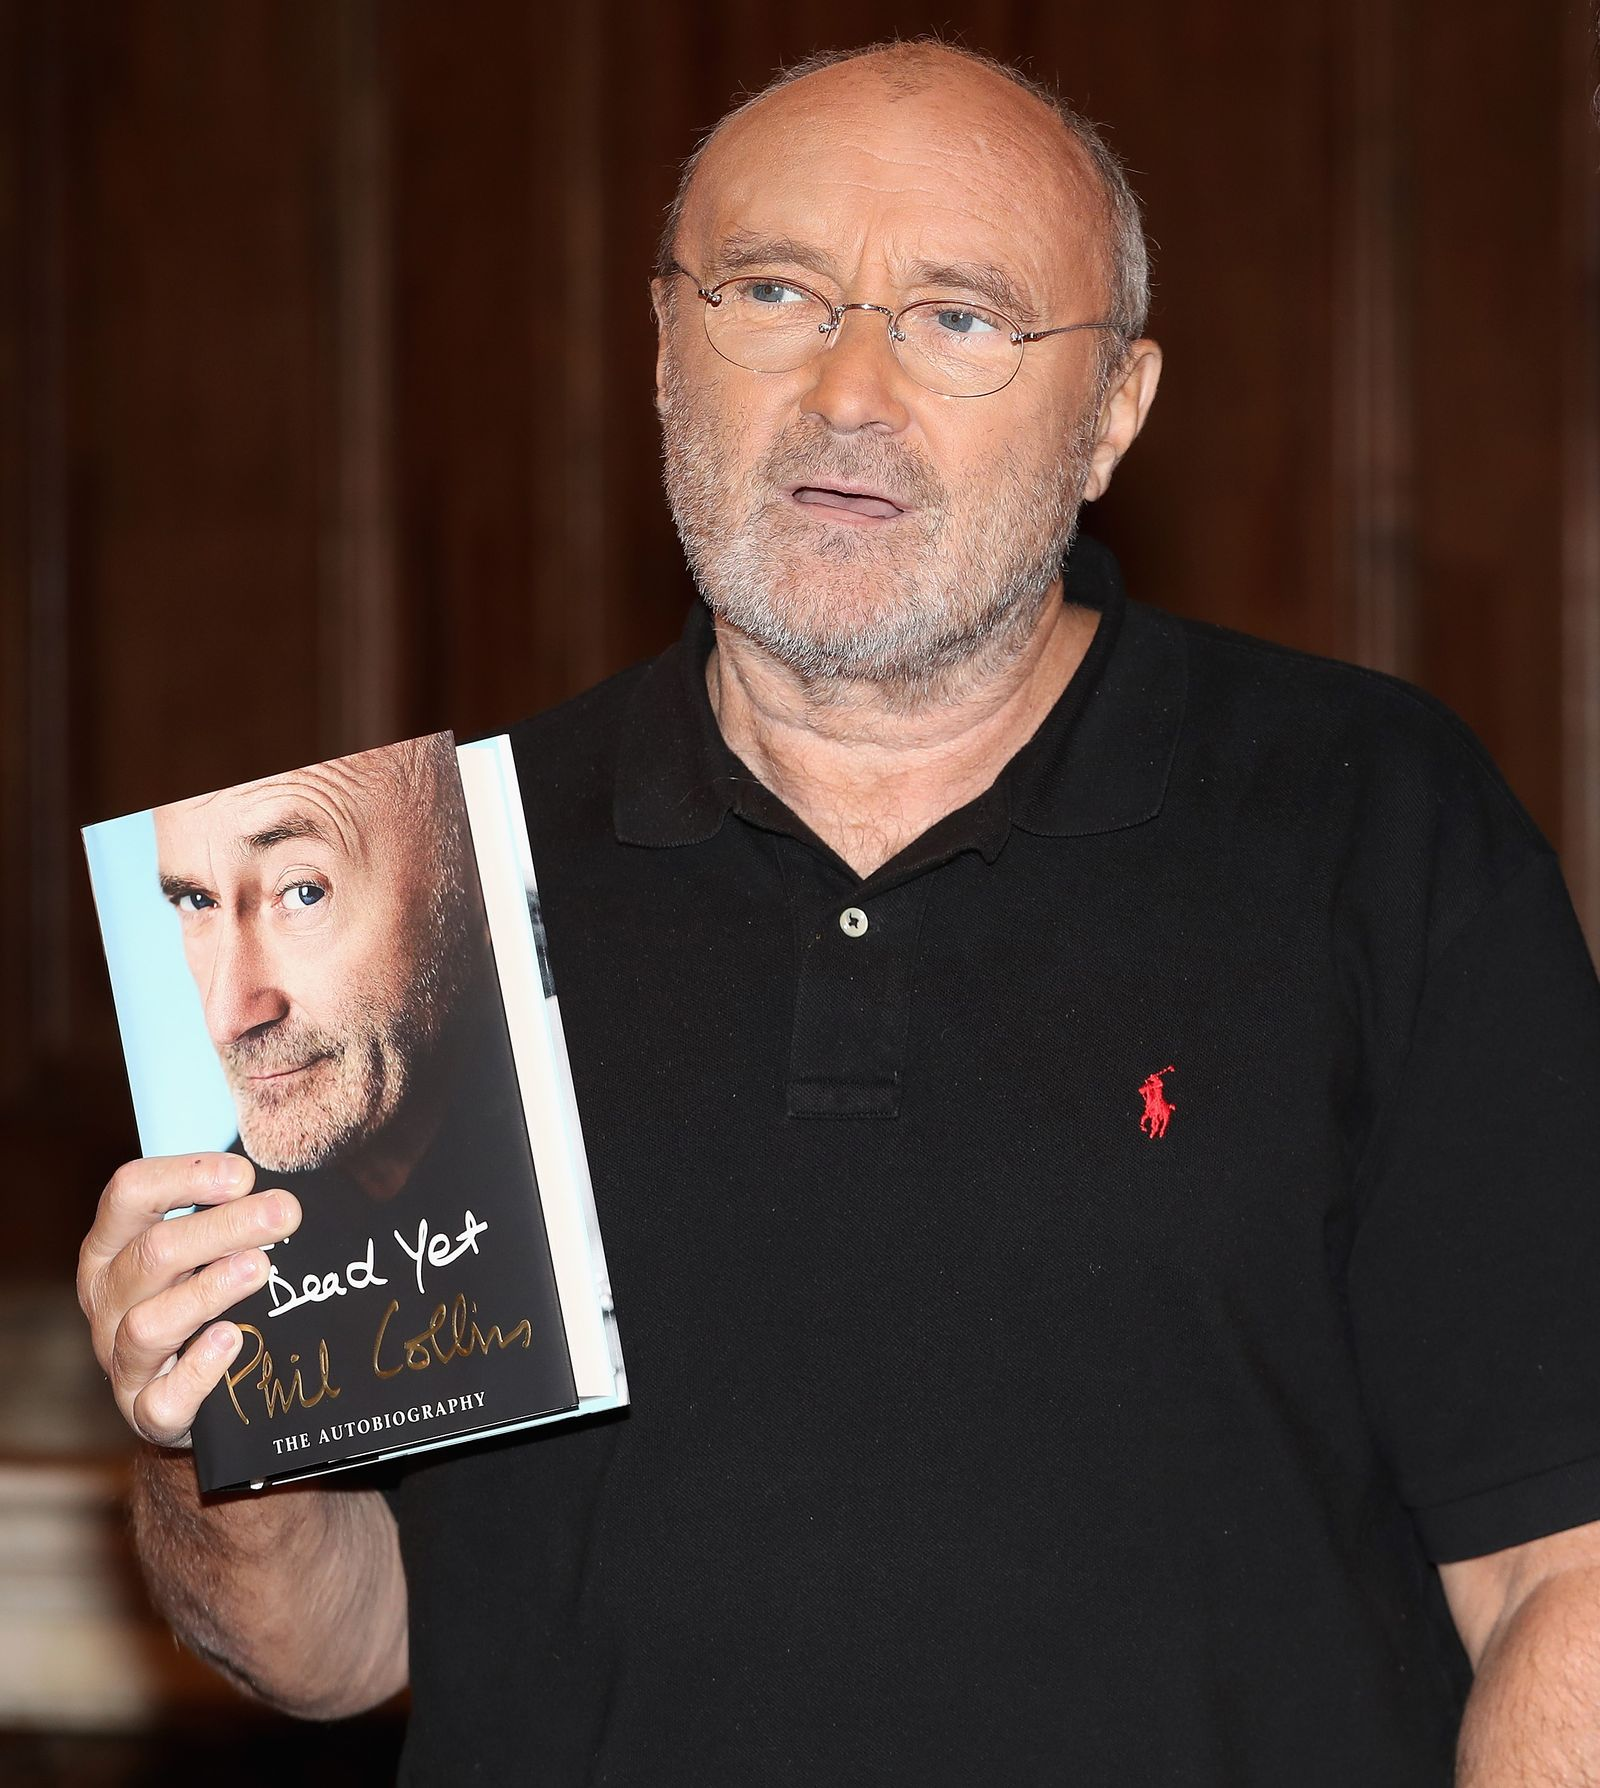 Phil Collins / Autobiografie